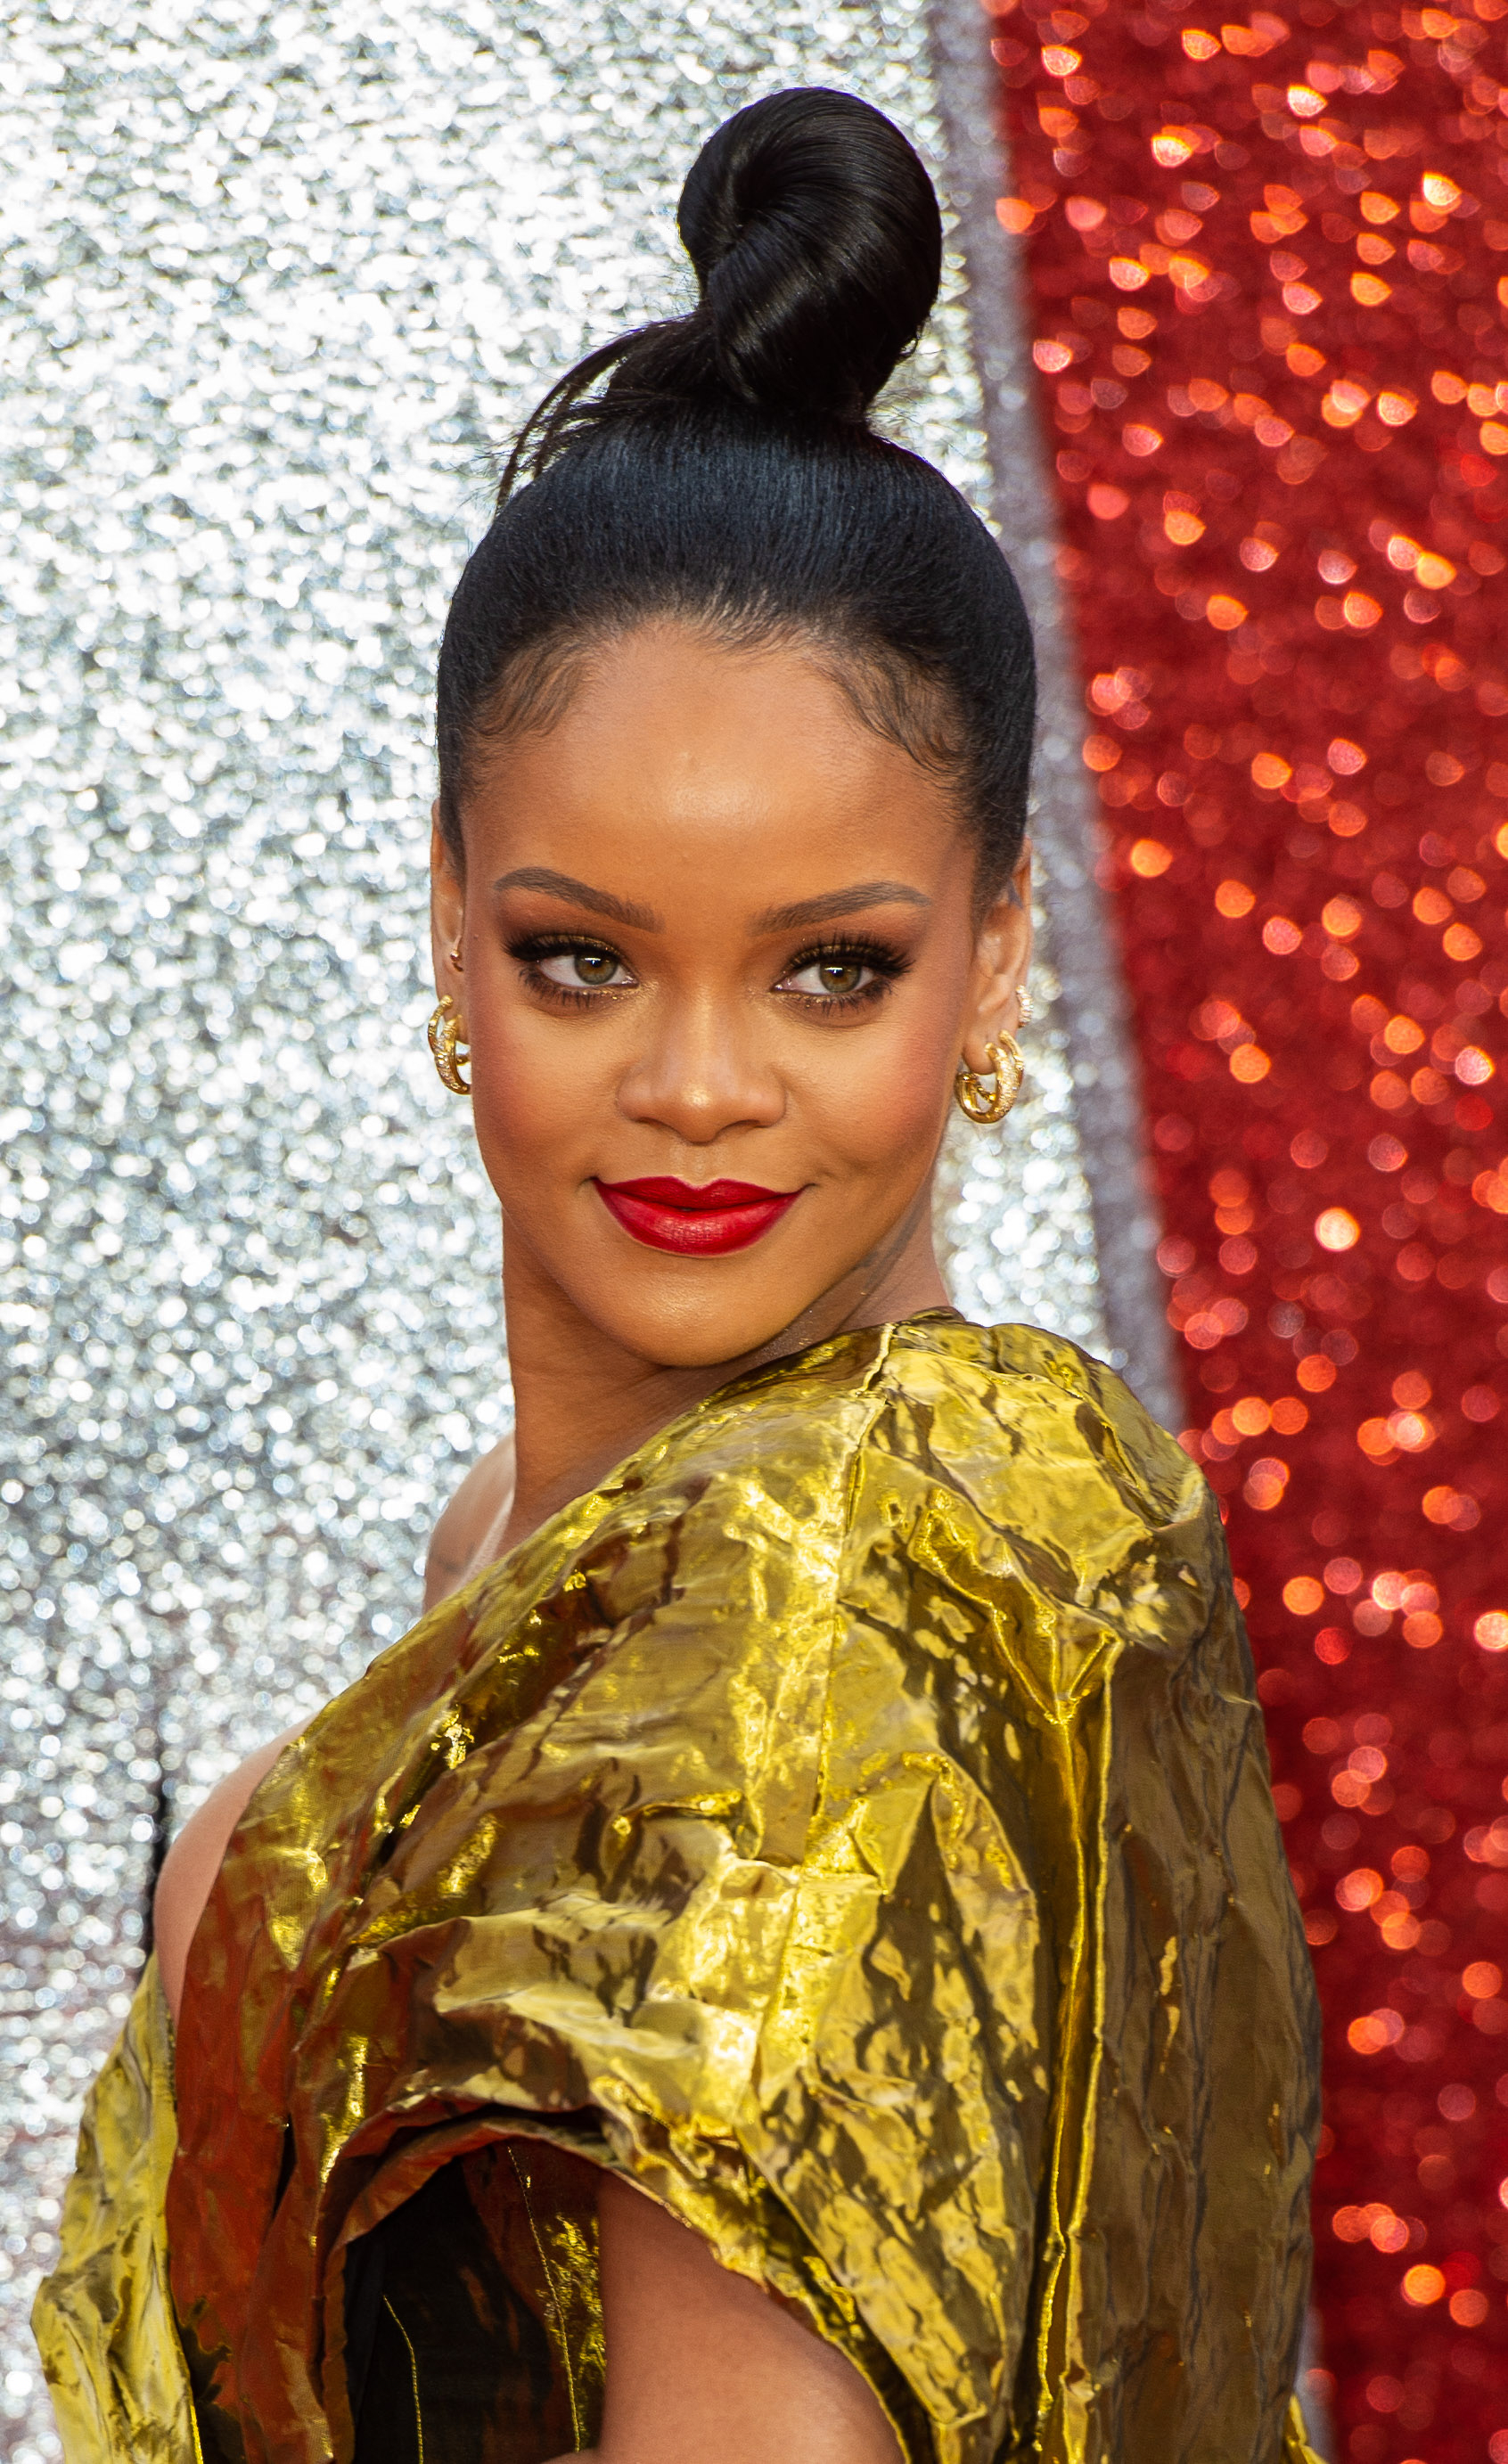 Amazon Reportedly Drops $25M For Rights To Peter Berg's 'Unfiltered' Documentary About Rihanna